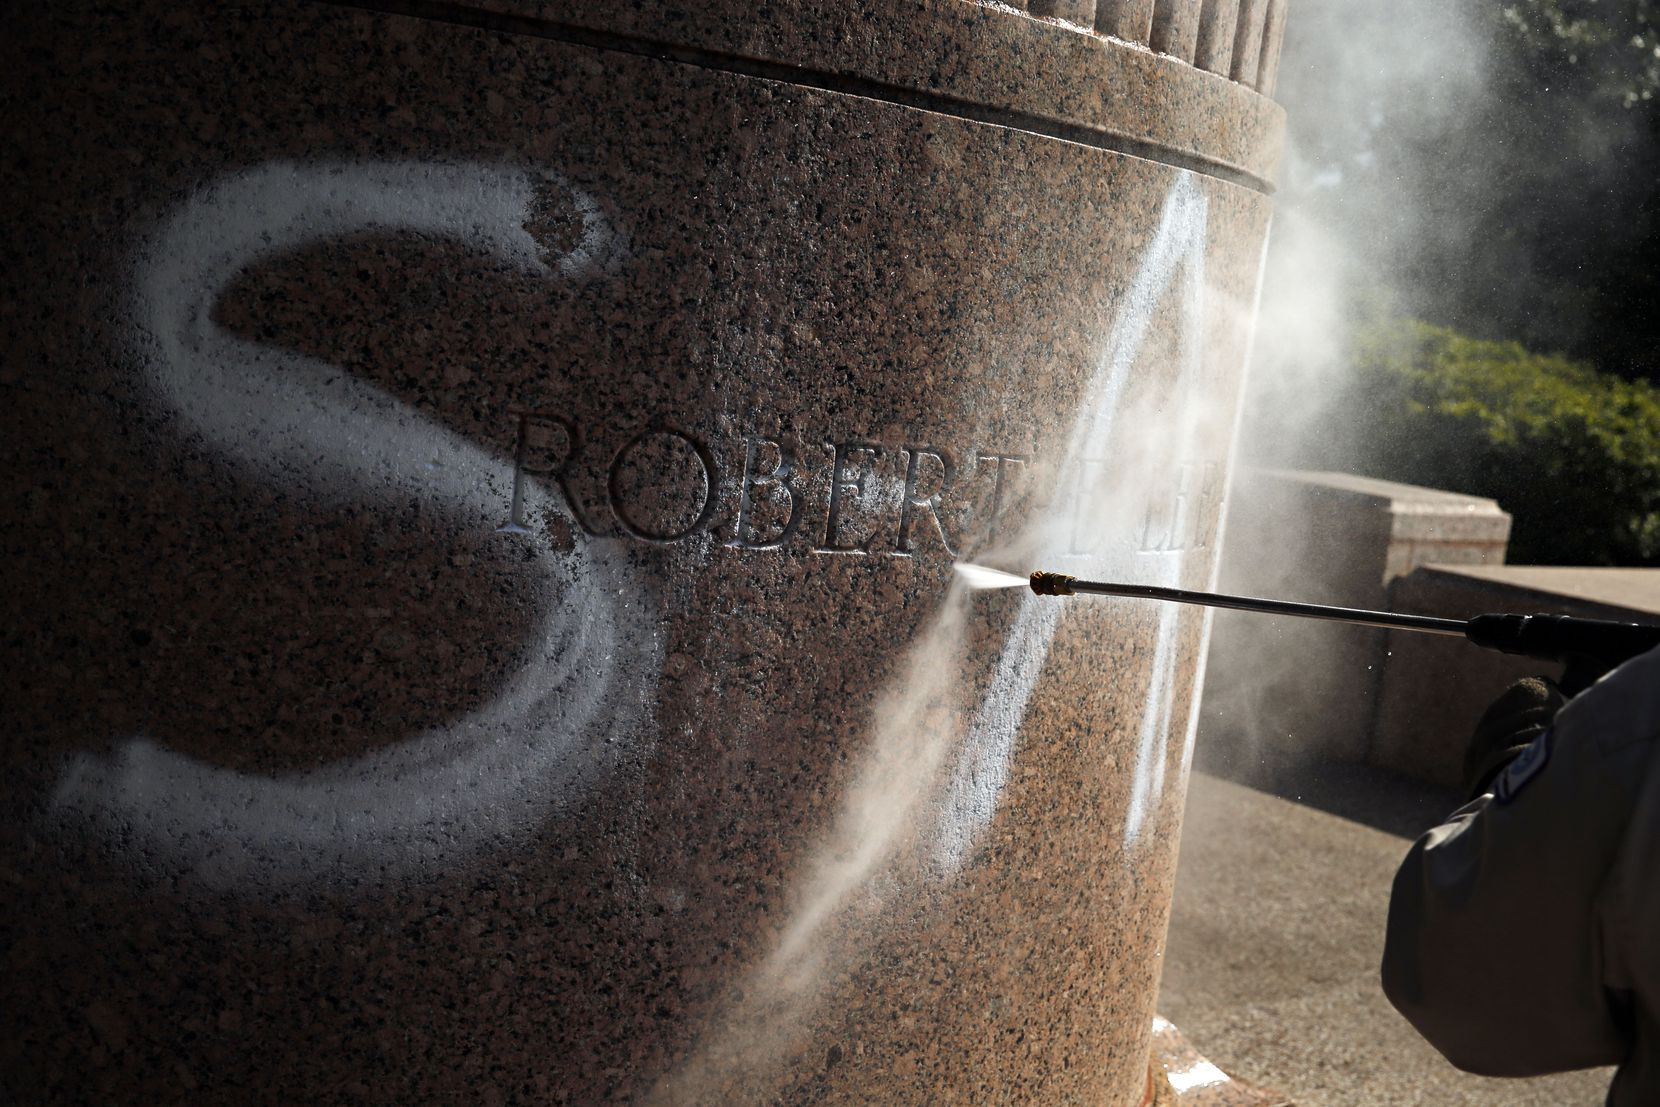 """Tino Banda, an employee of the City of Dallas Parks and Recreation Department, uses a power washer to remove the spray-painted word """"SHAME"""" from a statue of General Robert E. Lee at Robert E. Lee Park on July 10, 2015."""